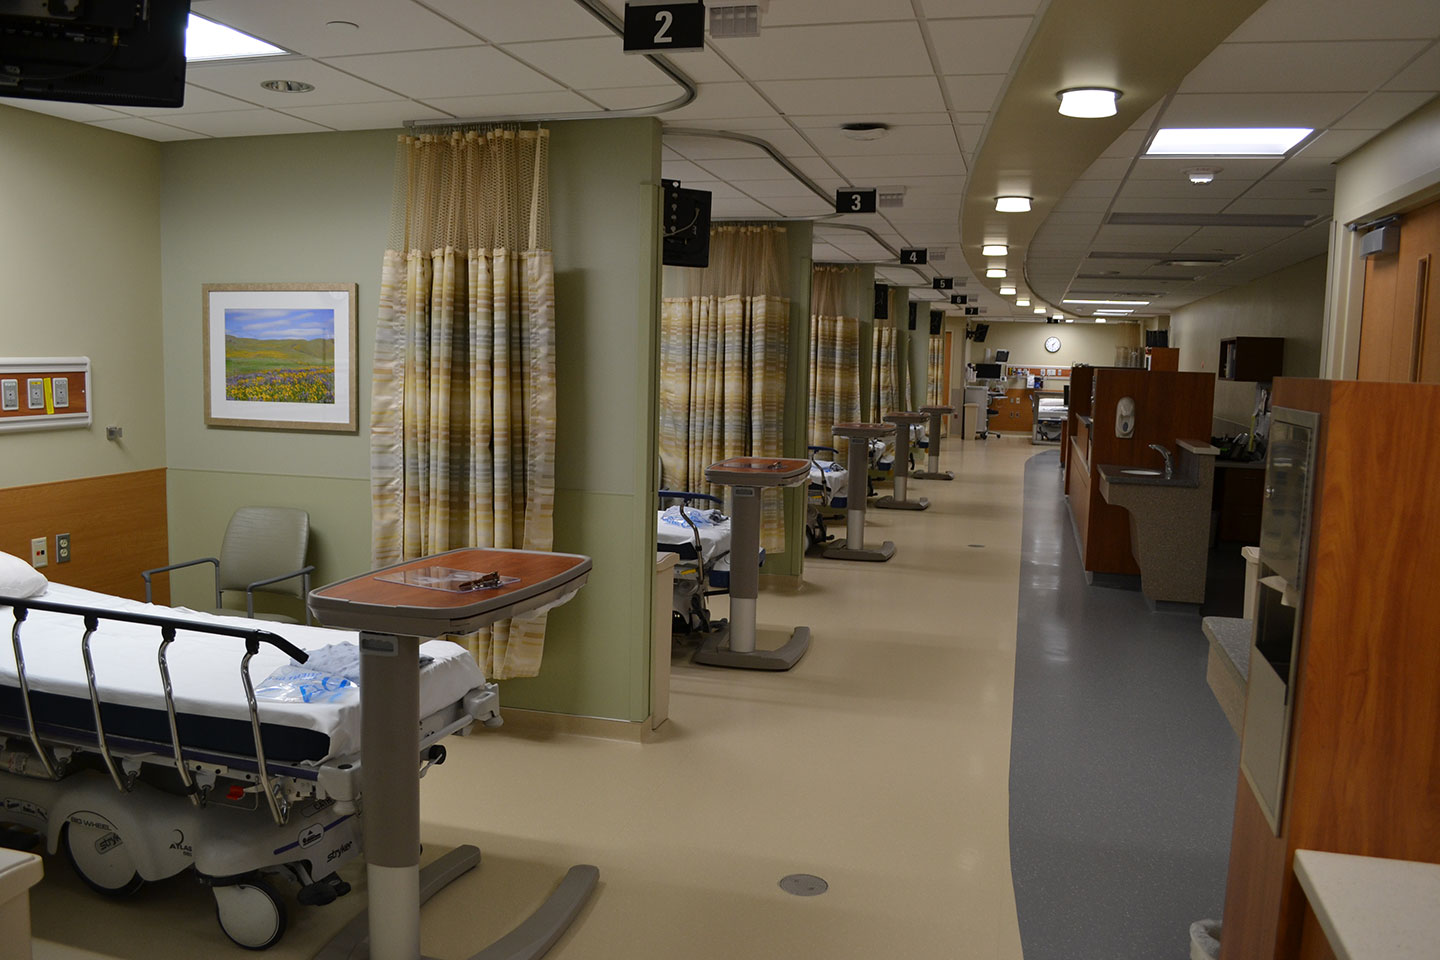 advocate-lutheran-genral-hospital-ir-expansion-17